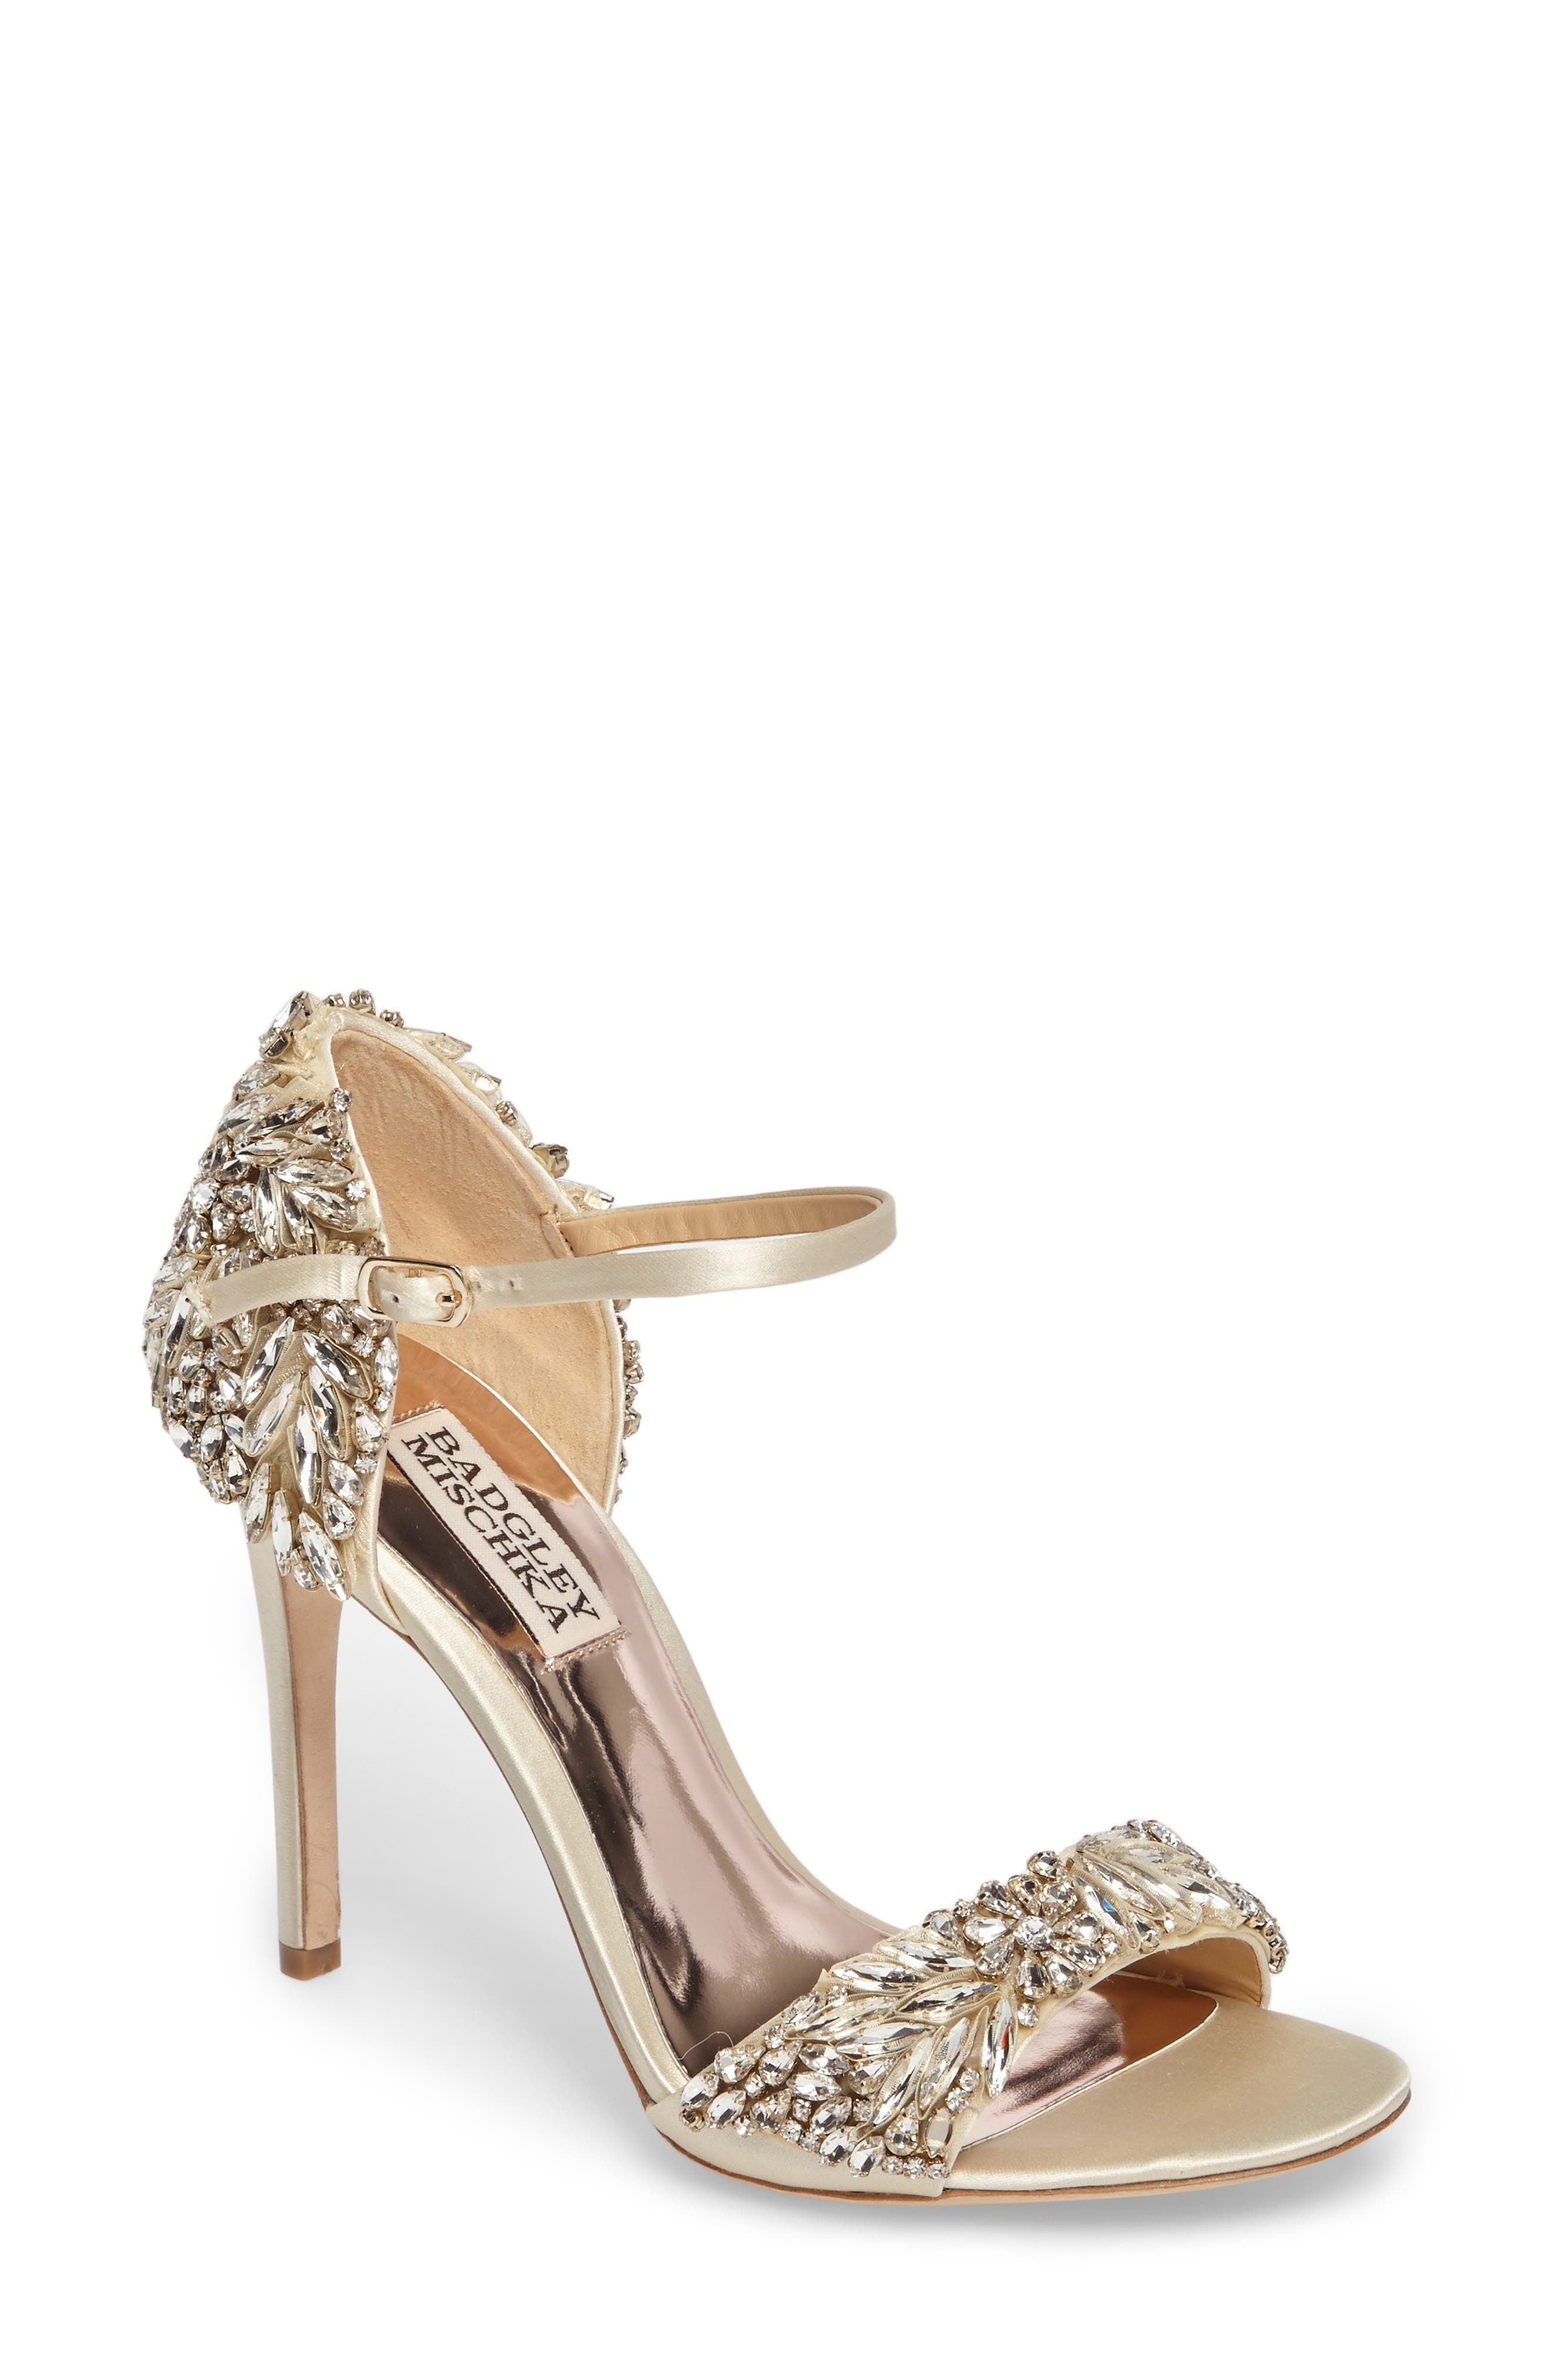 BADGLEY MISCHKA COLLECTION, Badgley Mischka Tampa Ankle Strap Sandal, Main thumbnail 1, color, IVORY SATIN